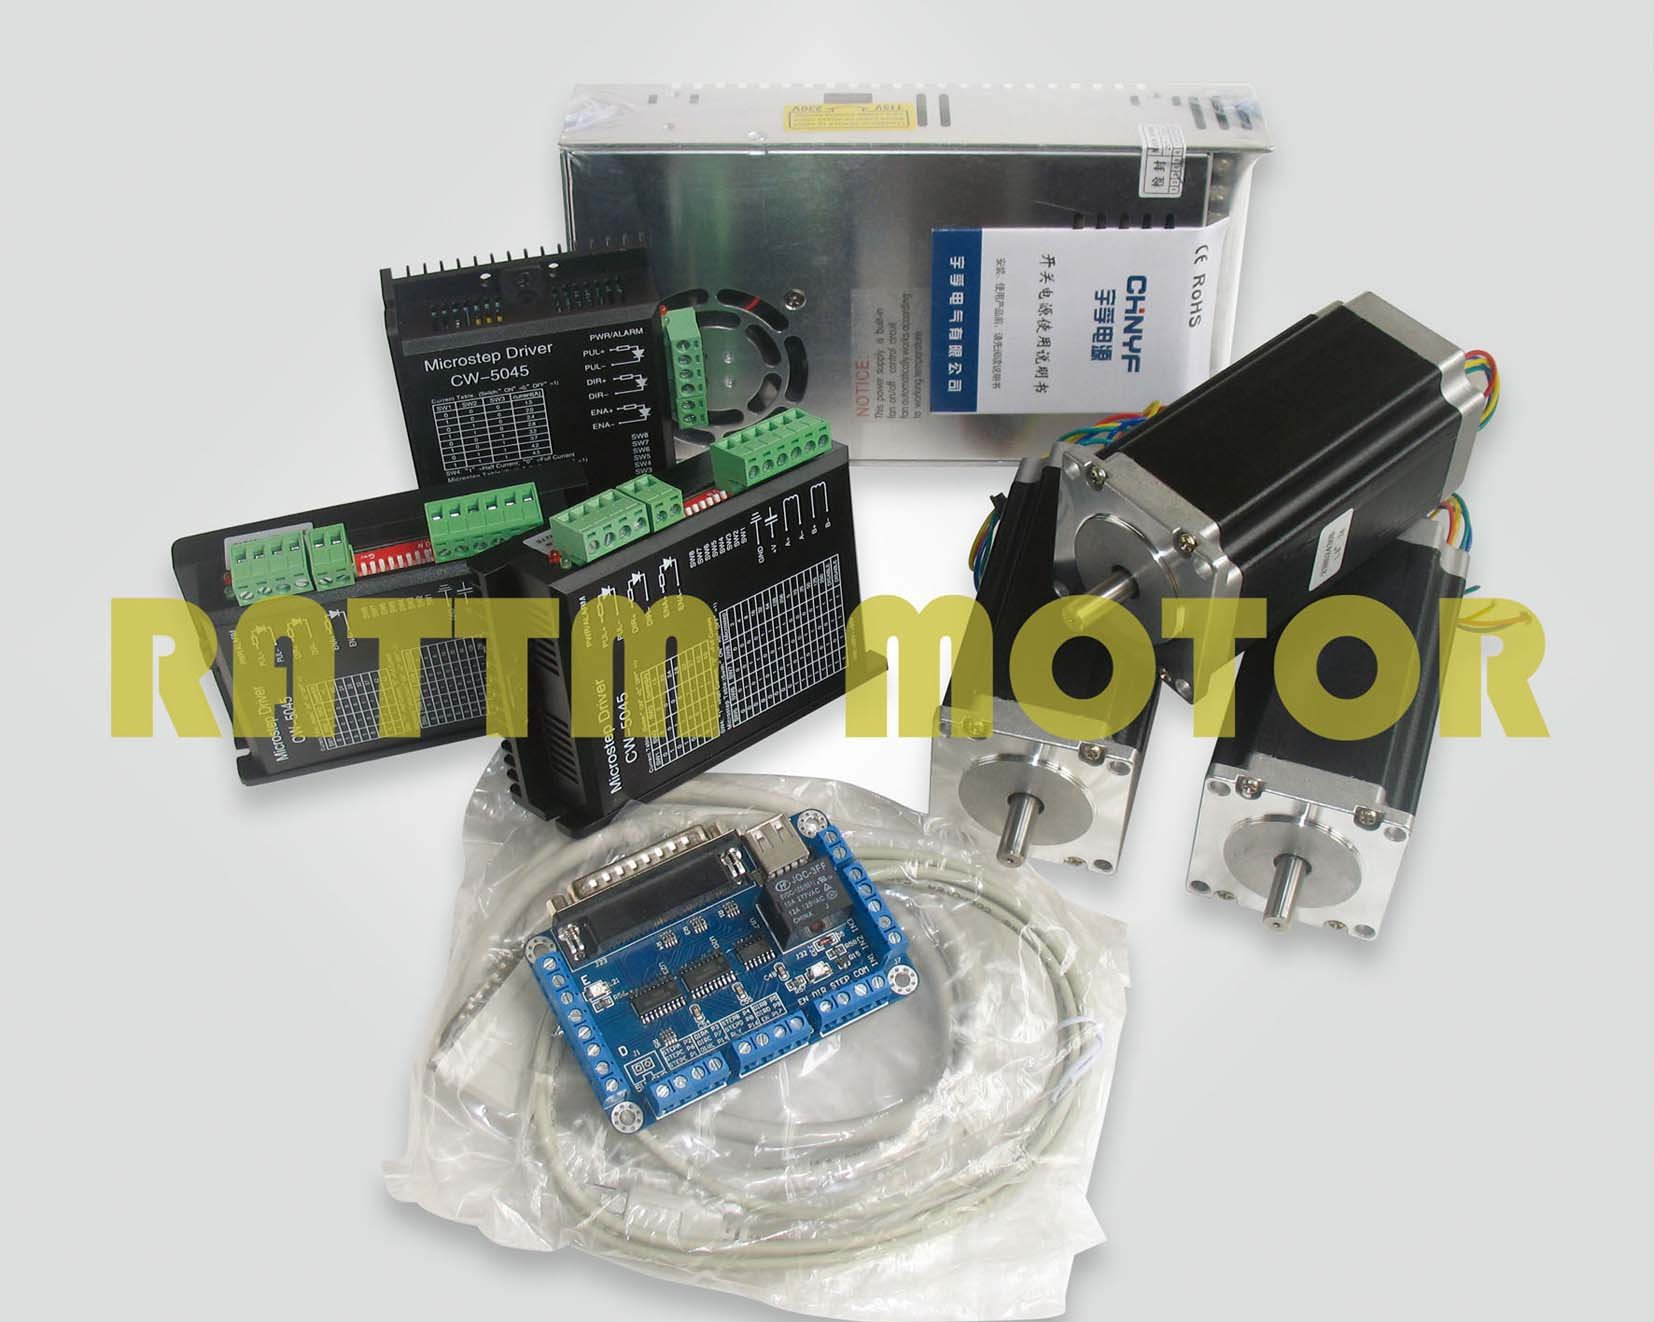 Germany Ship!!! 3 axis CNC stepper kit 3pcs NEMA23 425 oz-in(Dual shaft) stepper motor & 256 microstep 4.5A driver de ship free vat 4 axis nema23 425 oz in dual shaft stepper motor cnc controller kit